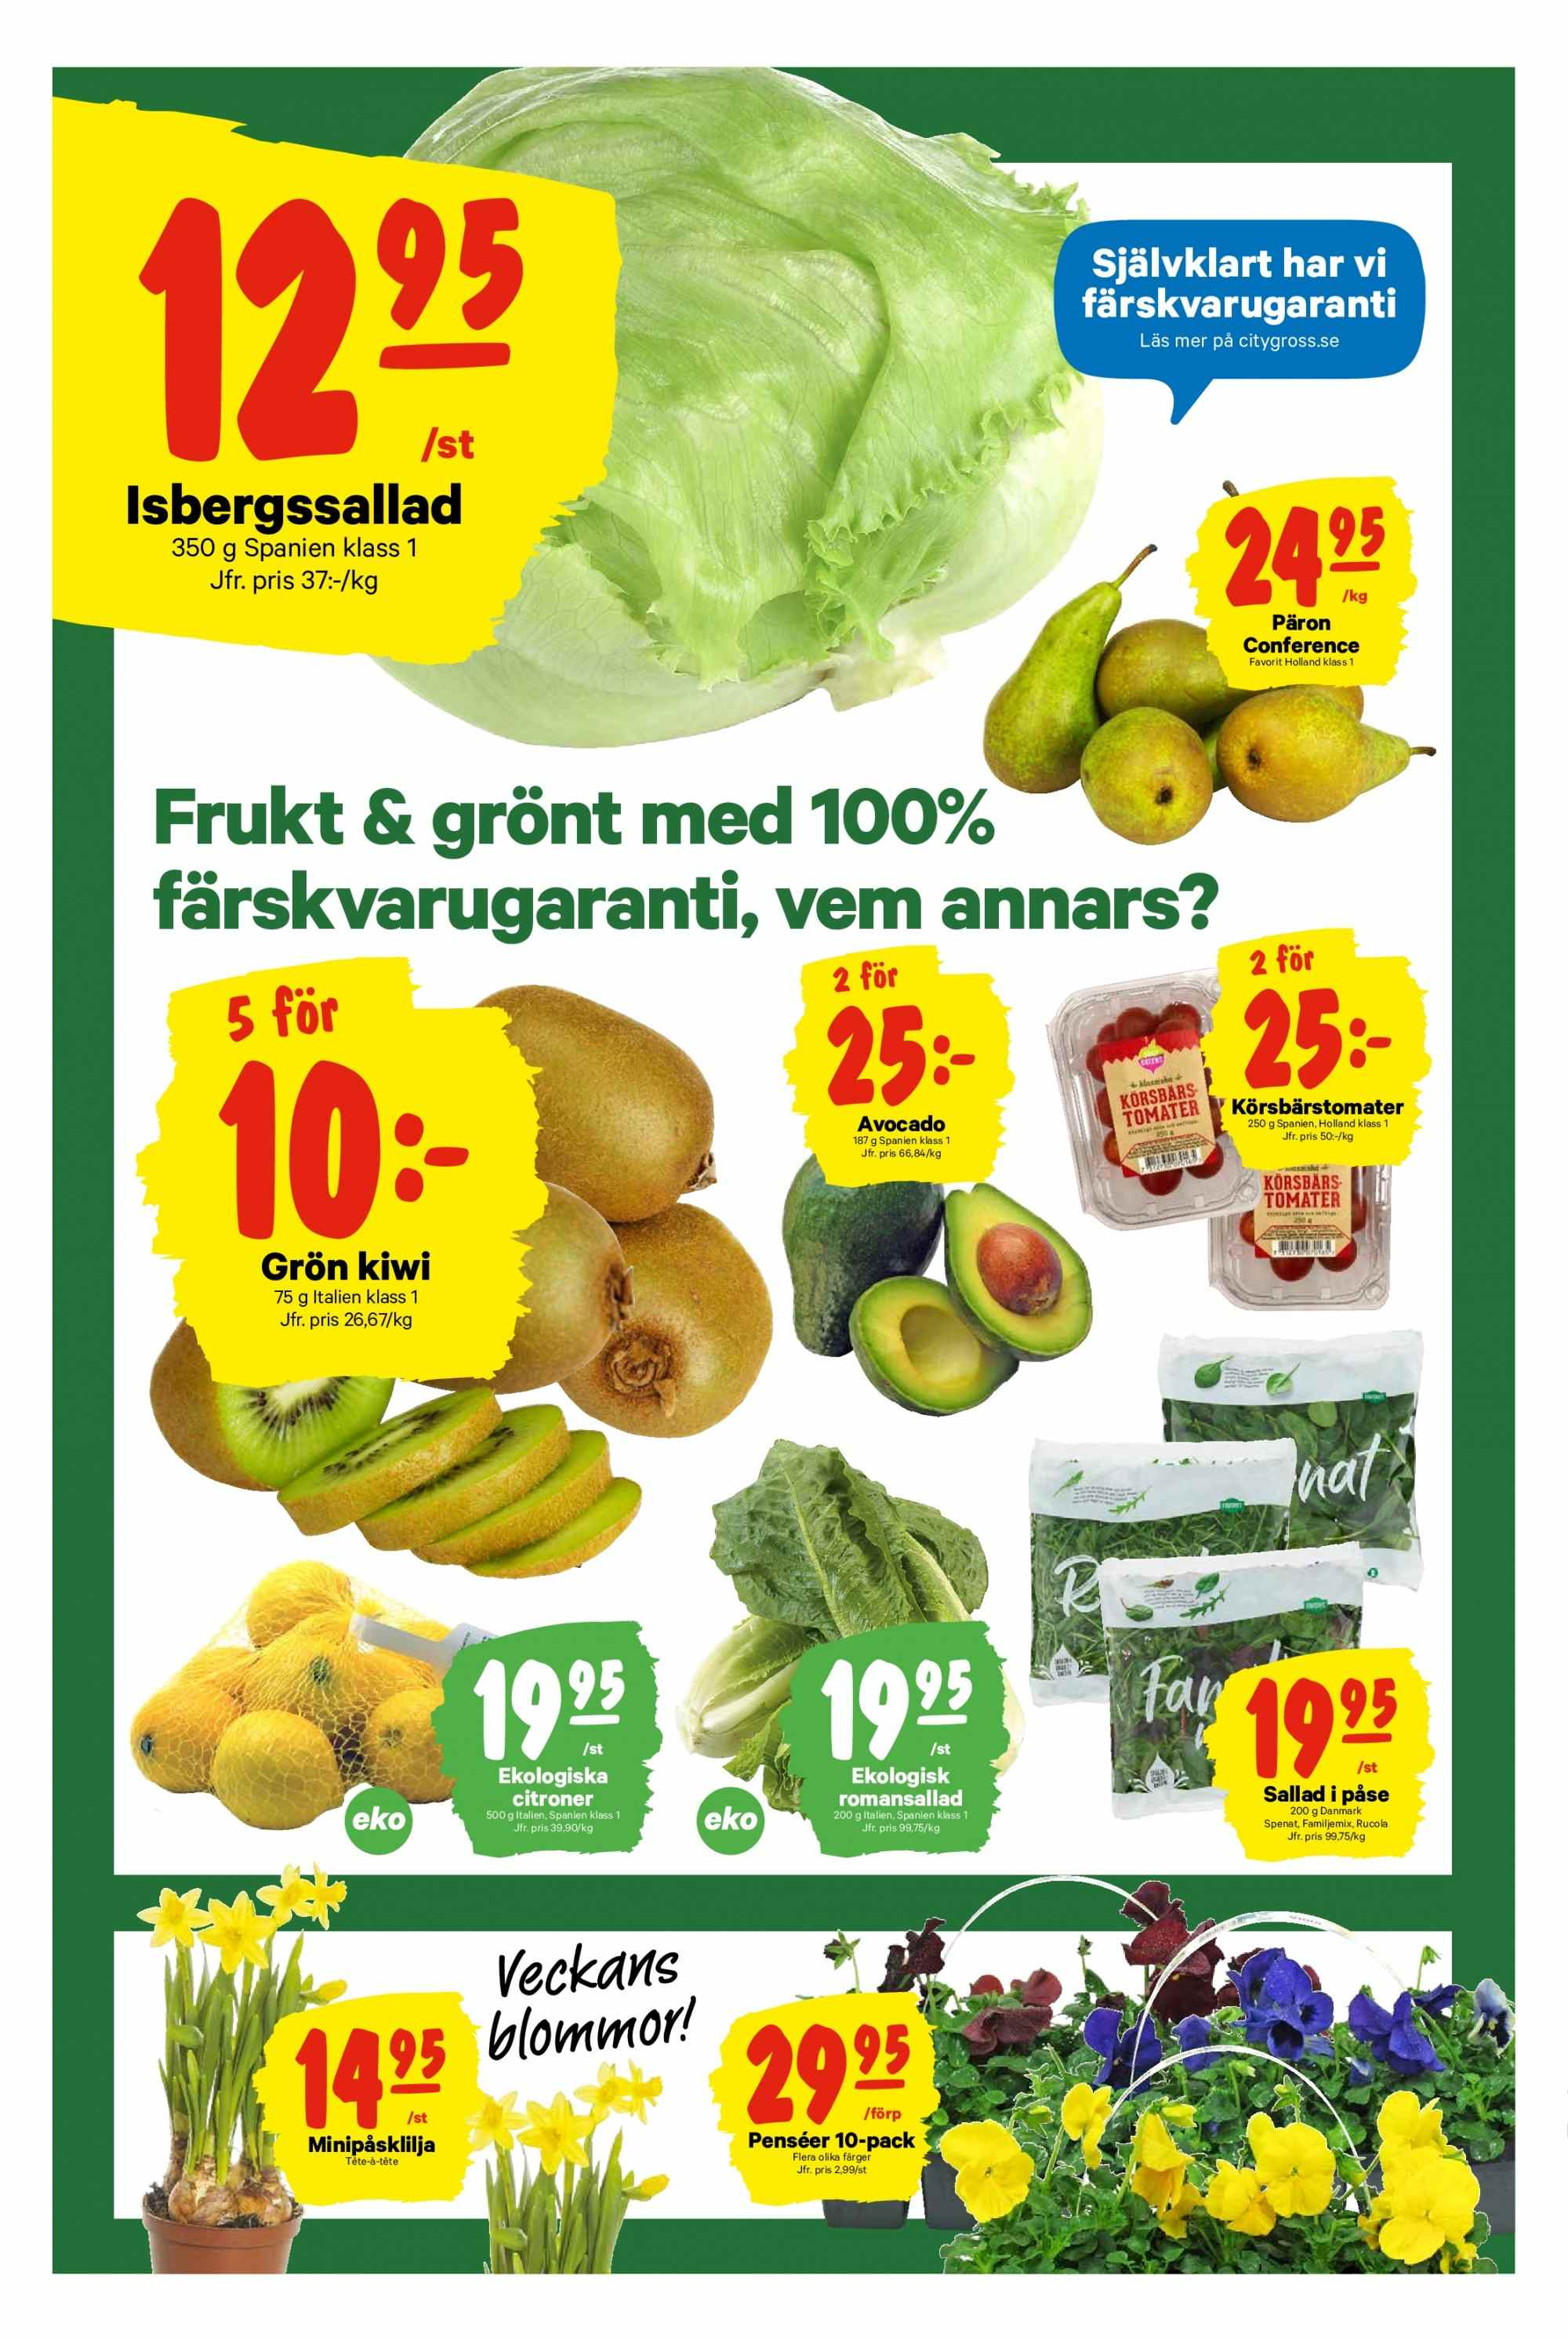 City Gross reklamblad - 1/4 2019 - 7/4 2019. Sida 4.